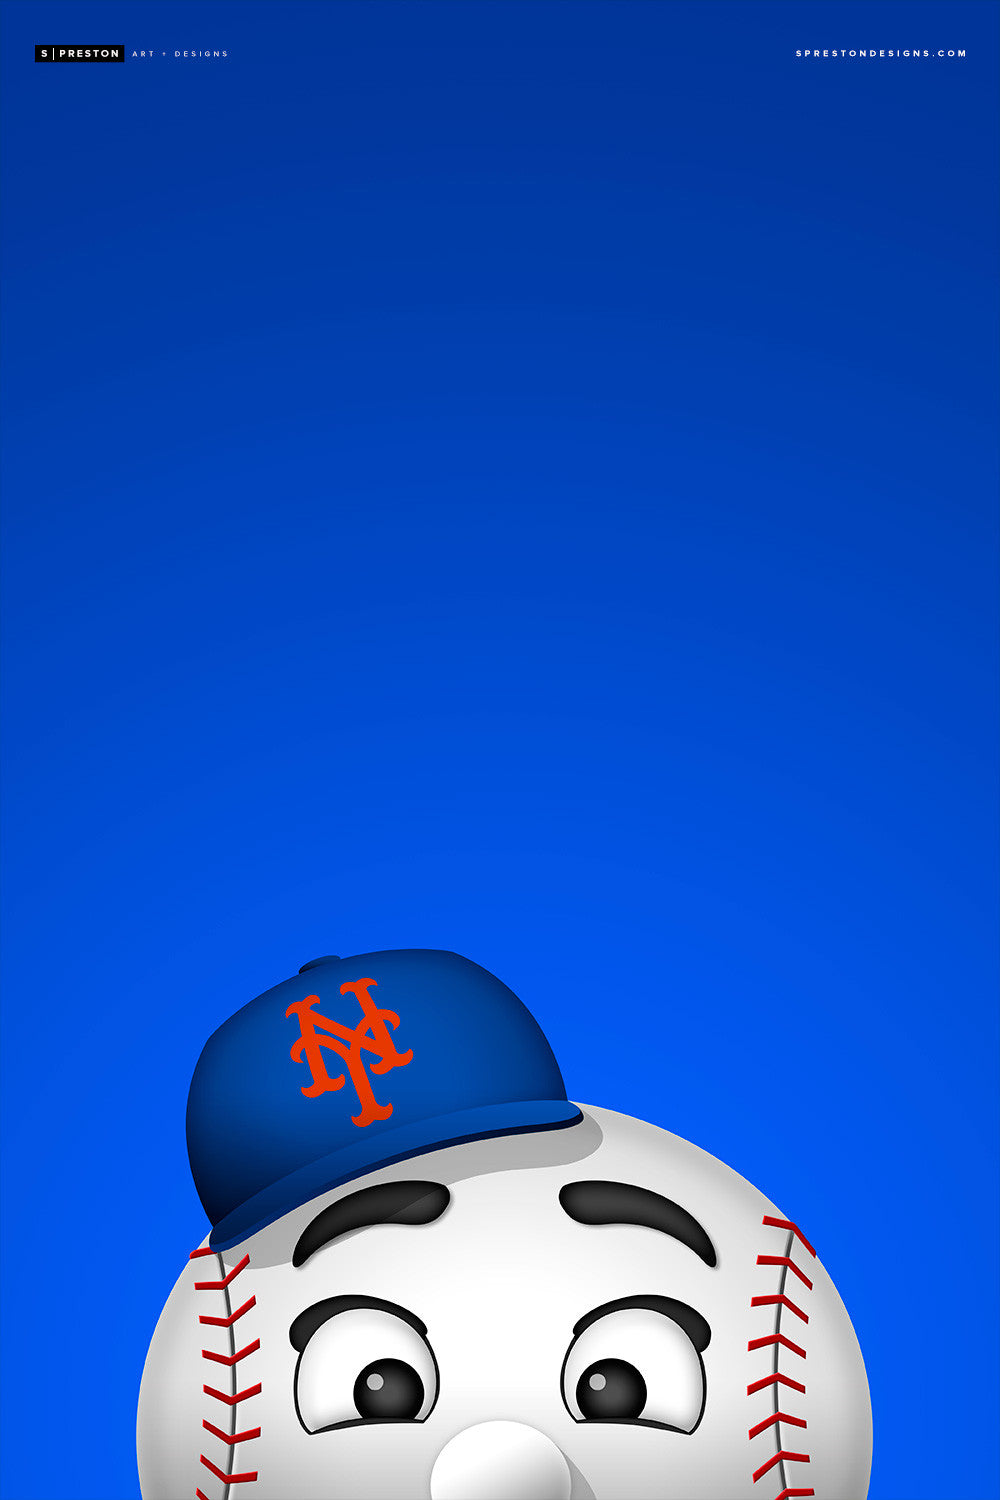 Minimalist Mr. Met Canvas Canvas - New York Mets - S. Preston Art + Designs